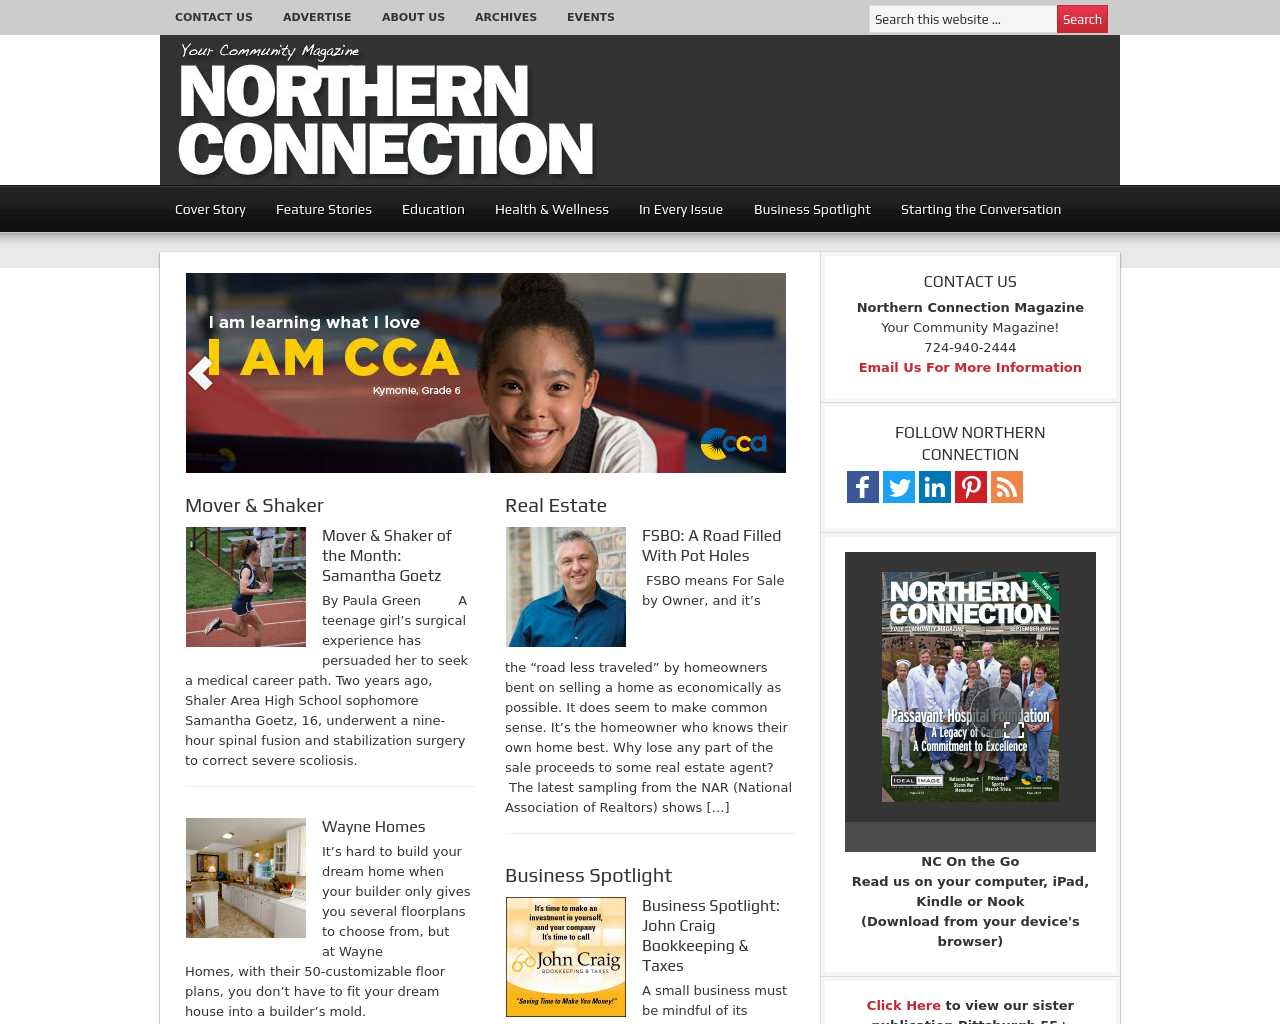 Northern-Connection-Advertising-Reviews-Pricing